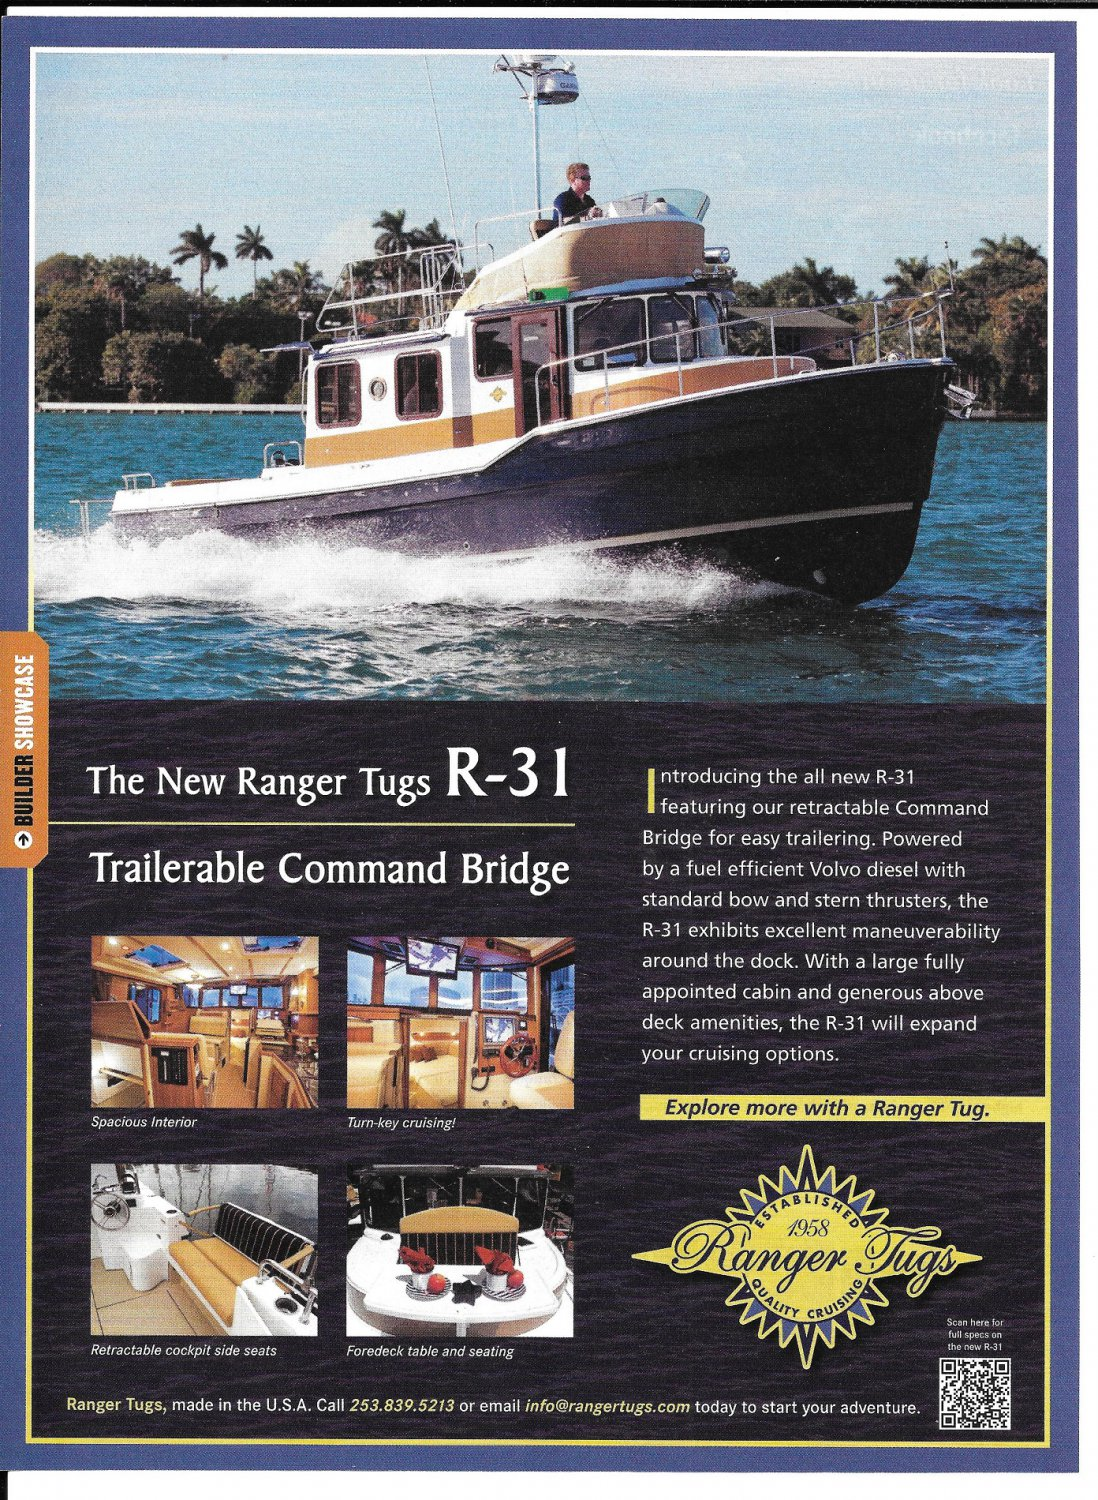 2012 Ranger Tugs R-31 Color Ad- Nice Photo